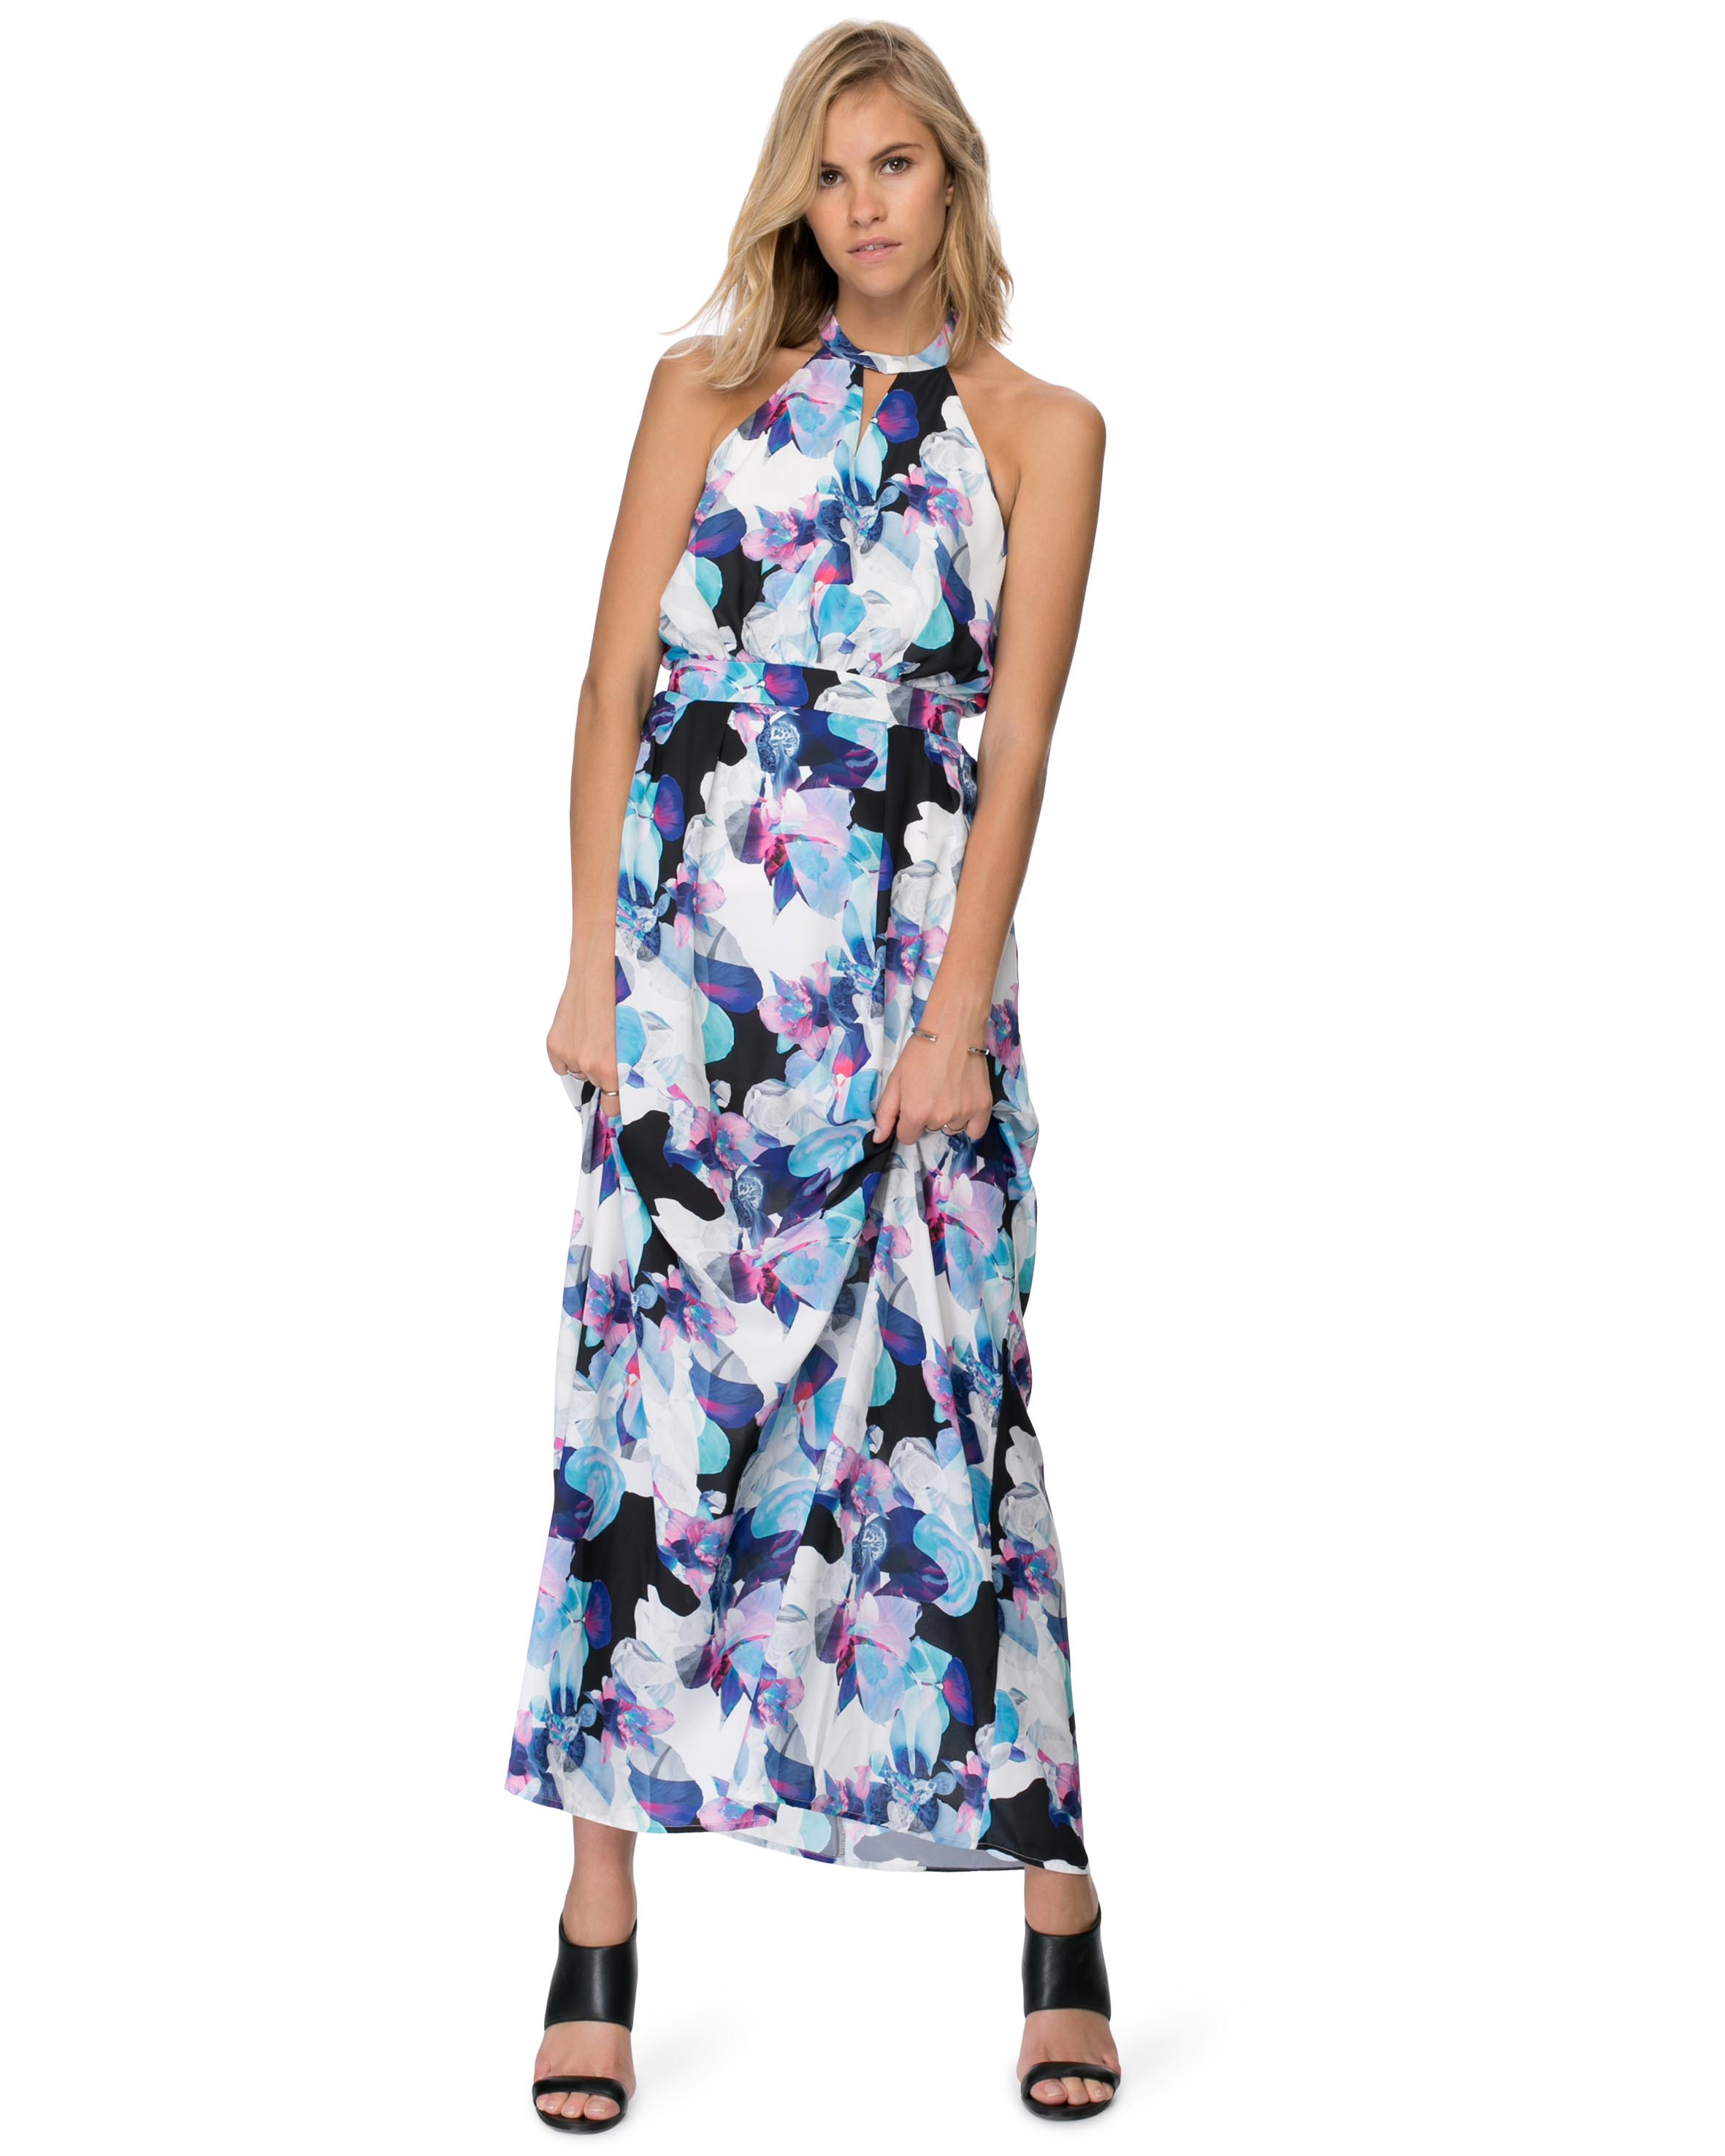 MIAMINX Black Colored Printed Maxi Dress Online Shopping Store